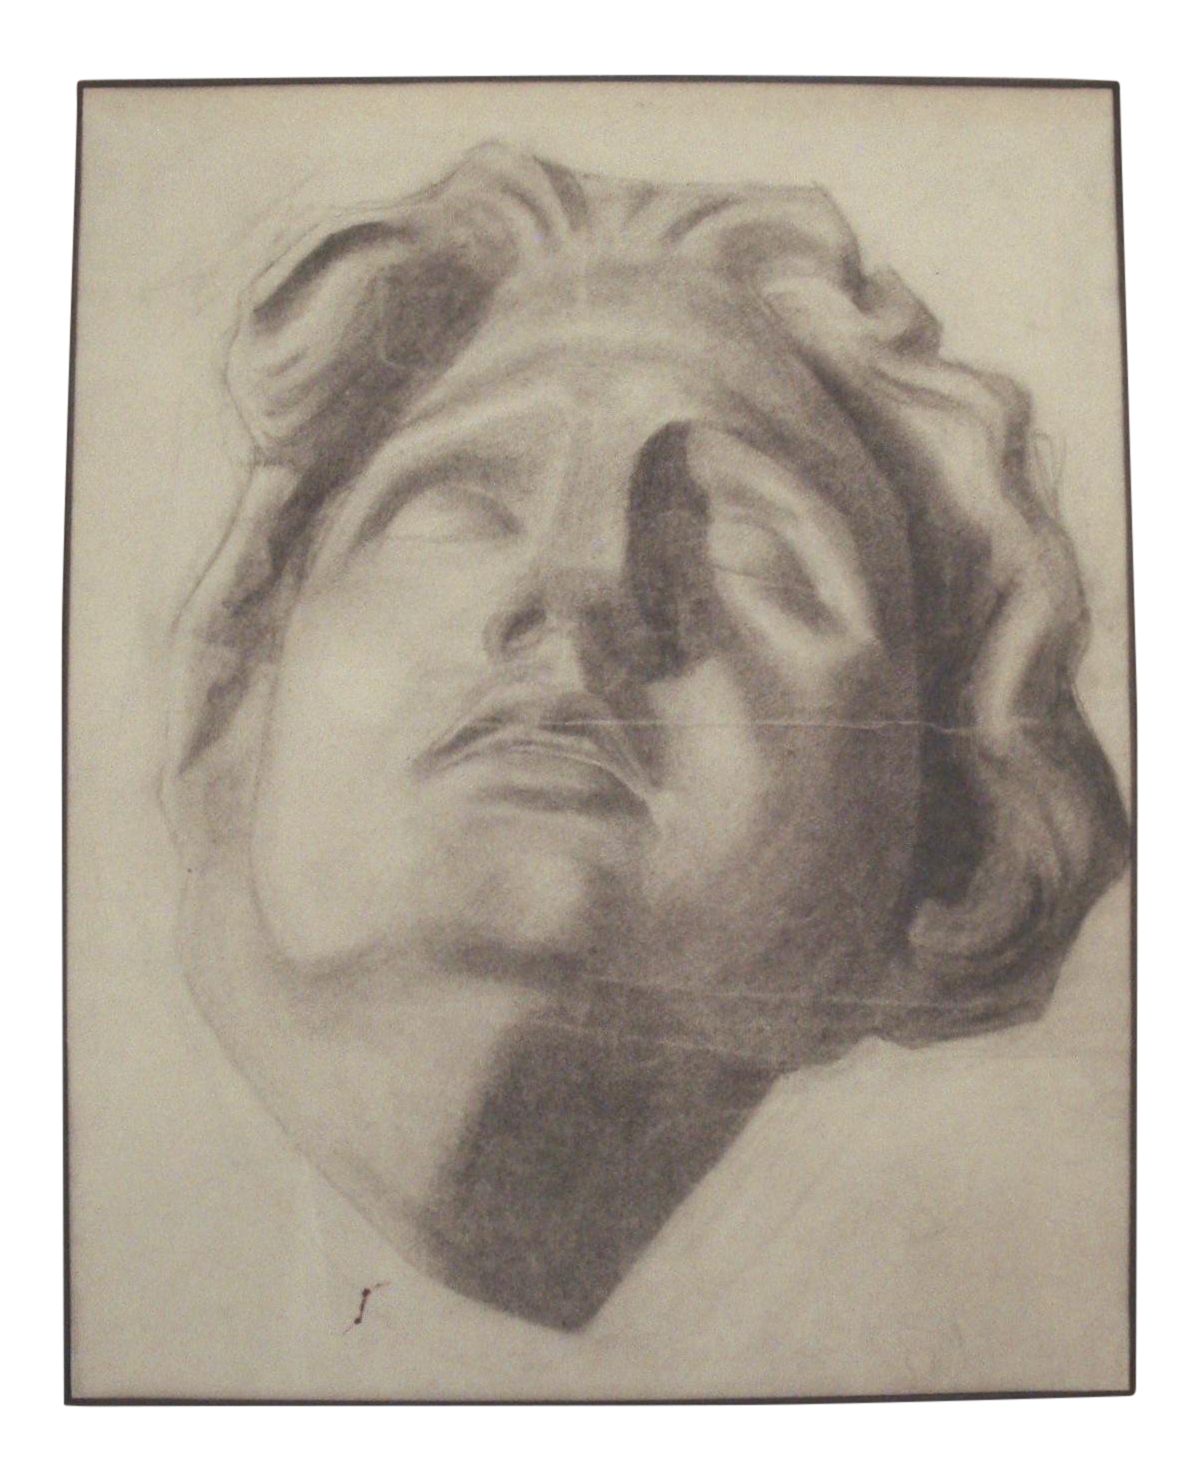 Self drawing charcoal. Of a stone